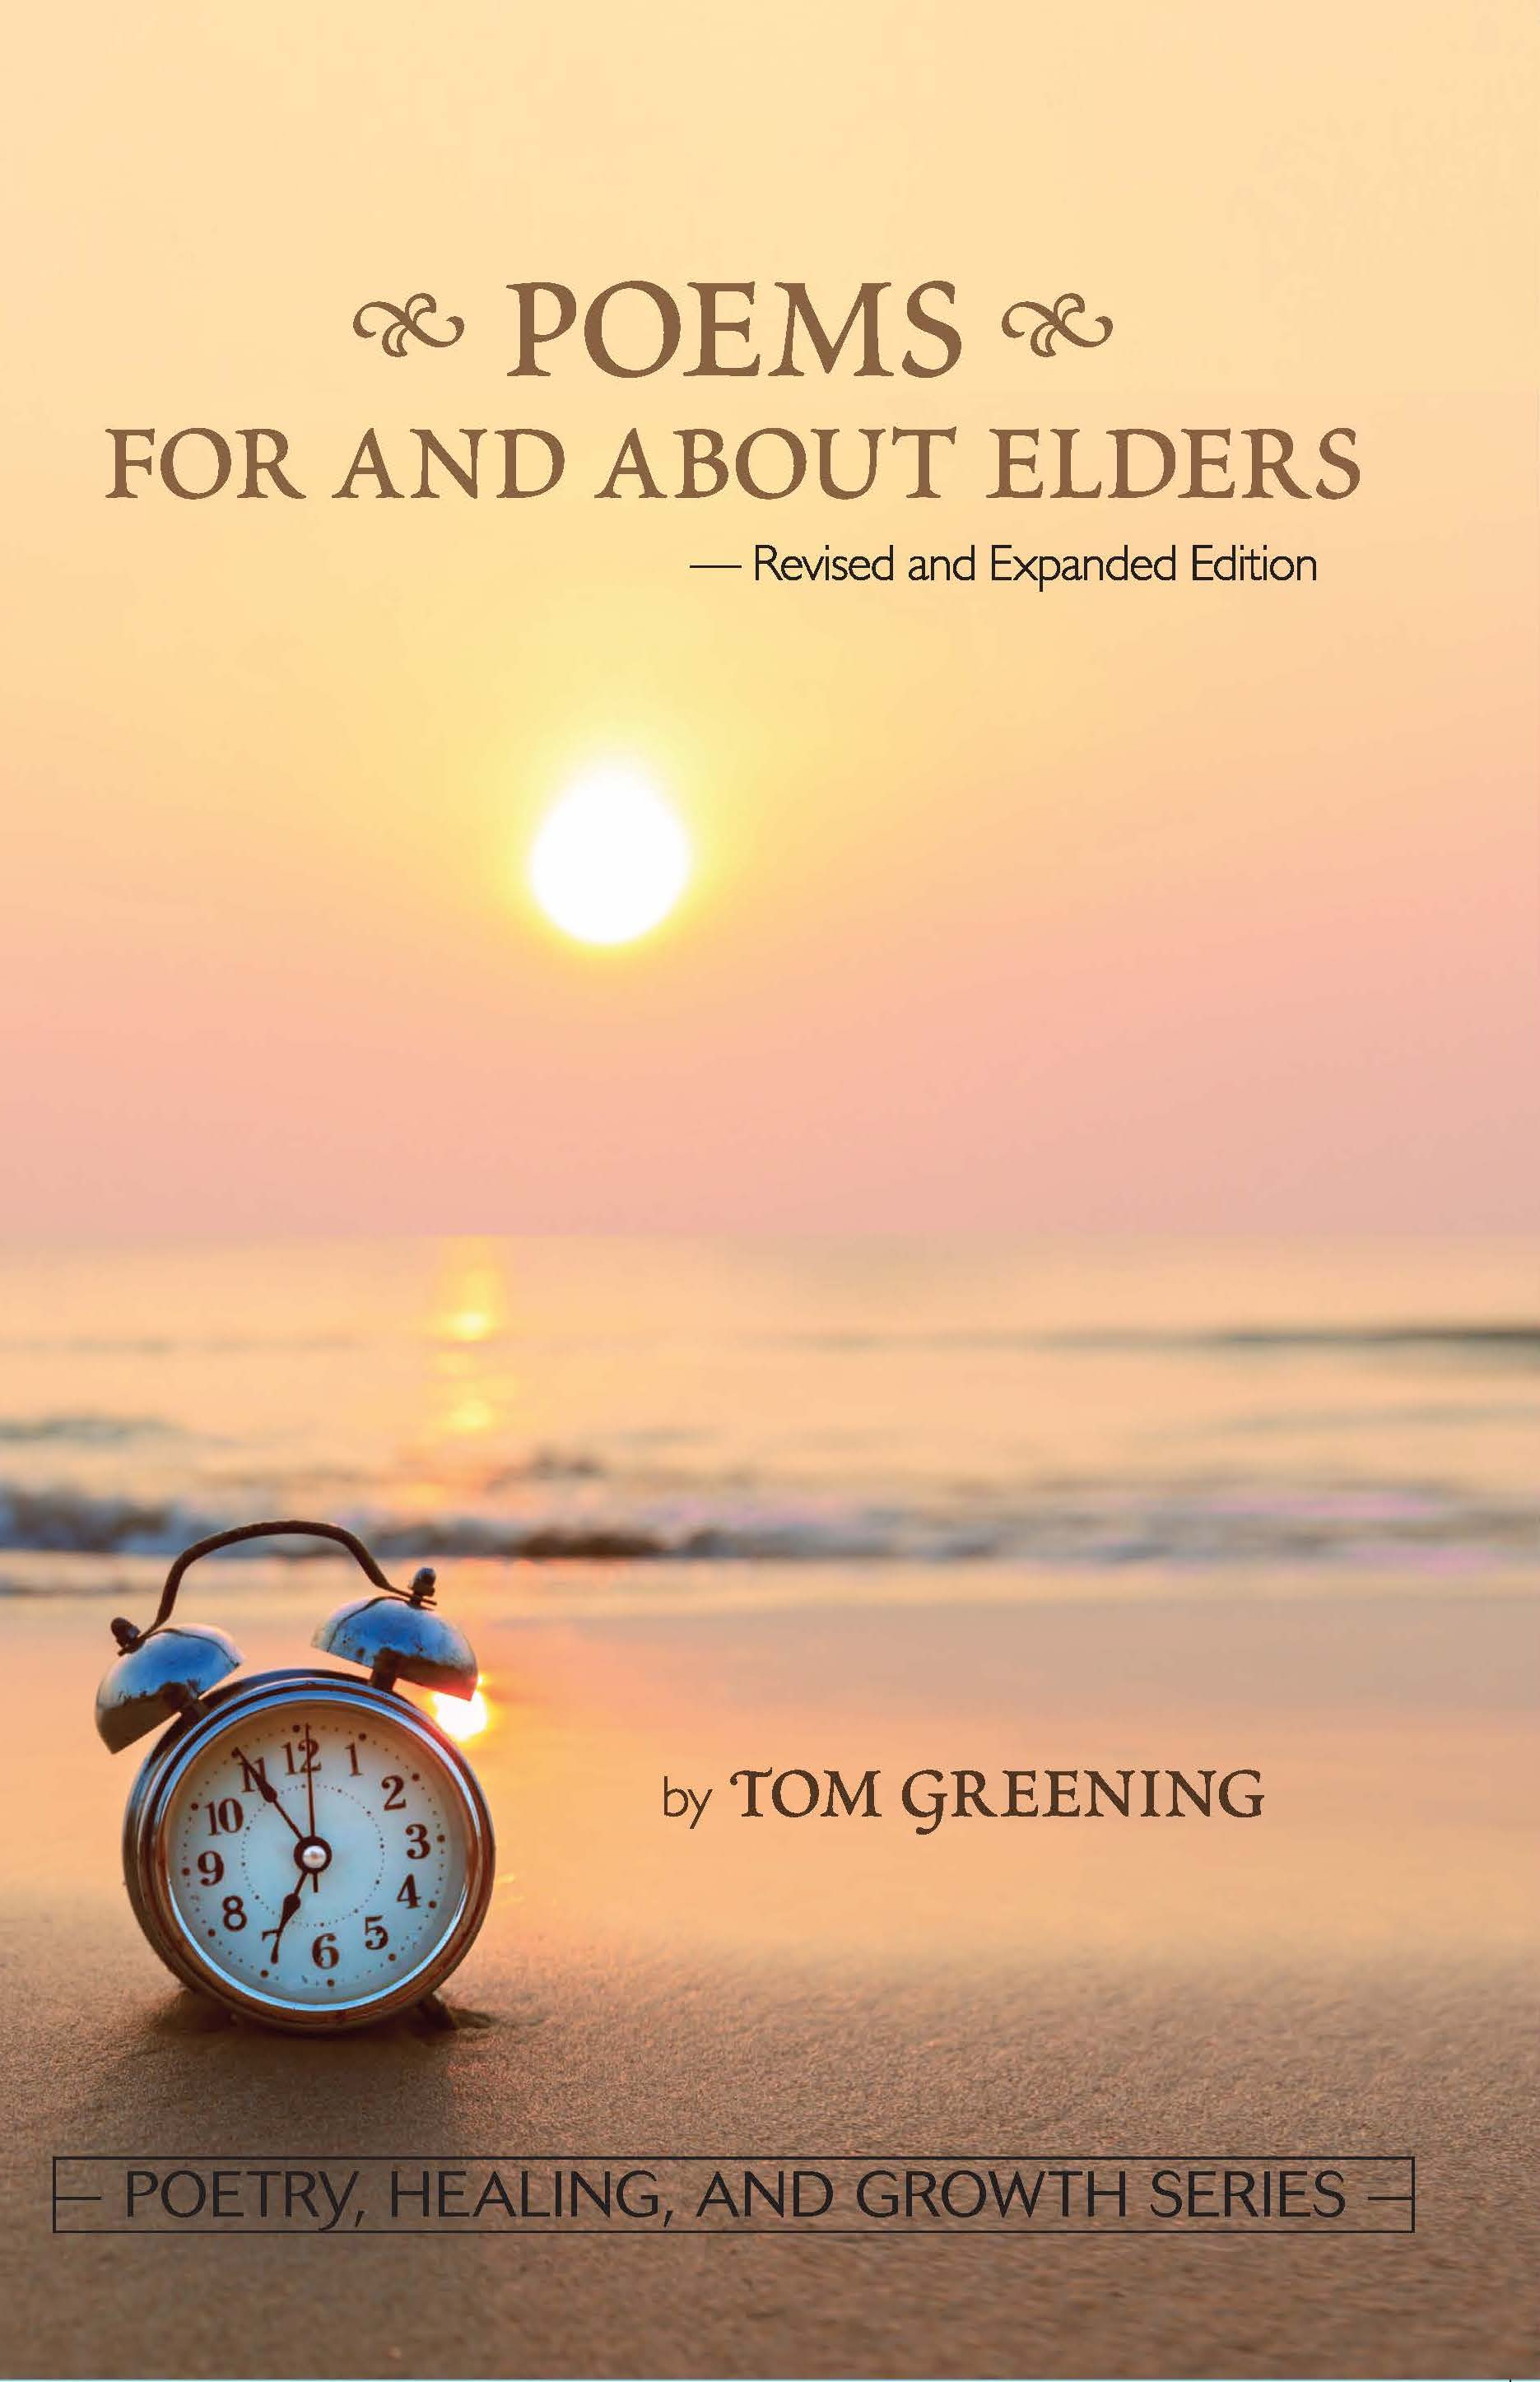 Poems For and About Elders (Revised & Expanded Version) by Tom Greening Image